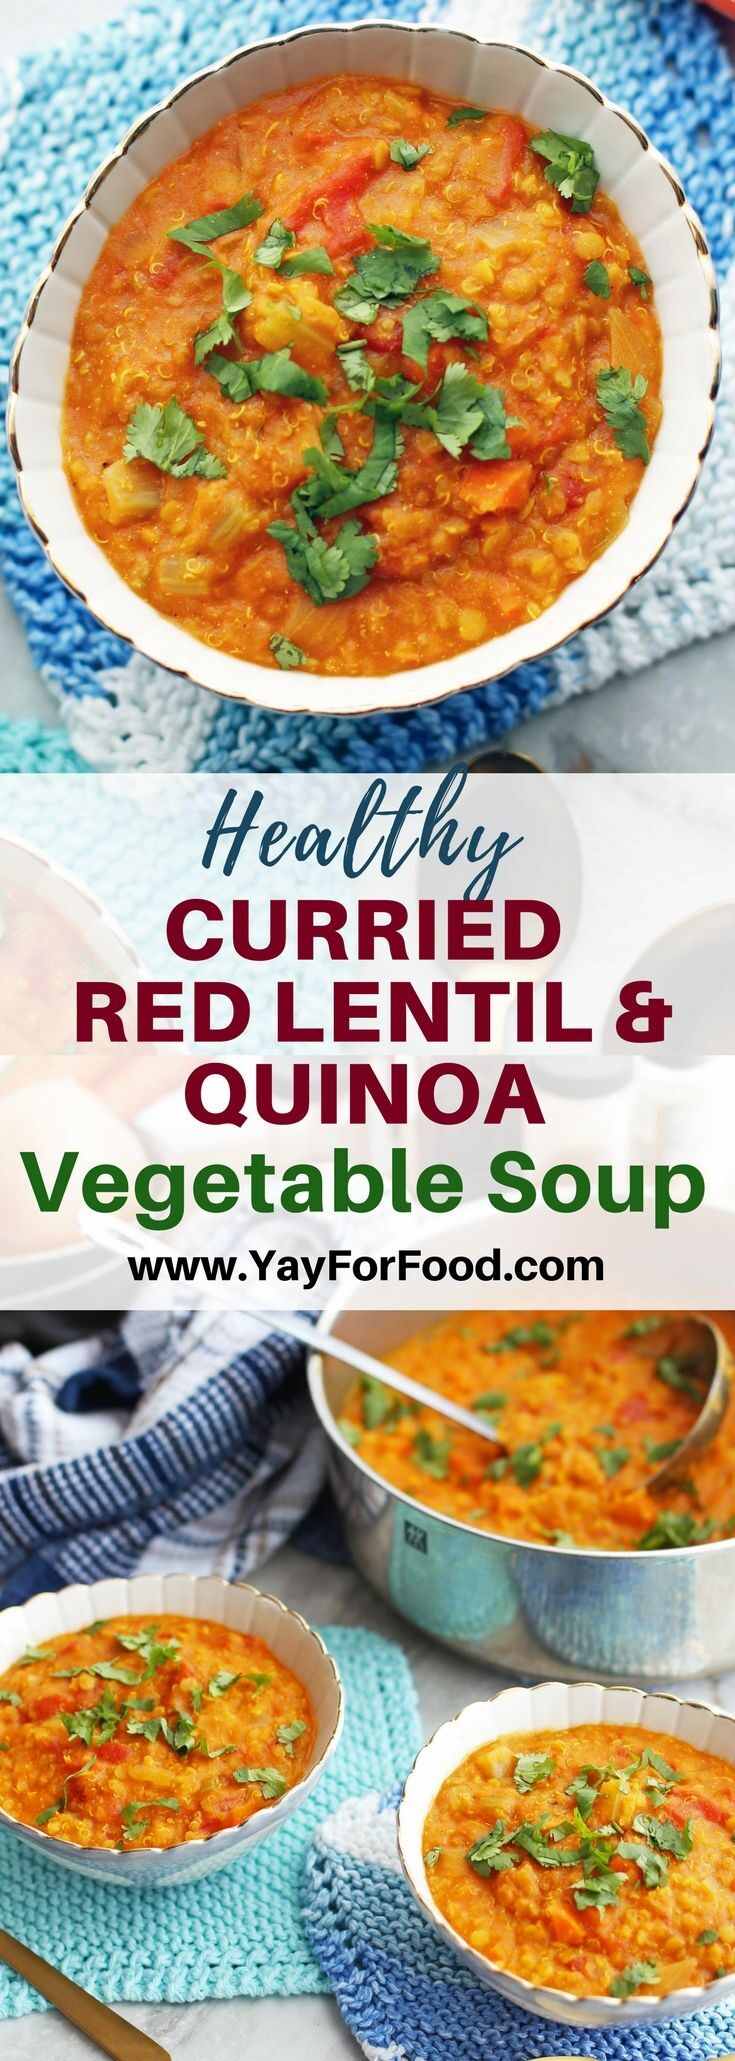 Hearty and delicious! This easy soup is loaded with healthy protein and fiber-rich ingredients! It's vegan and gluten-free too.